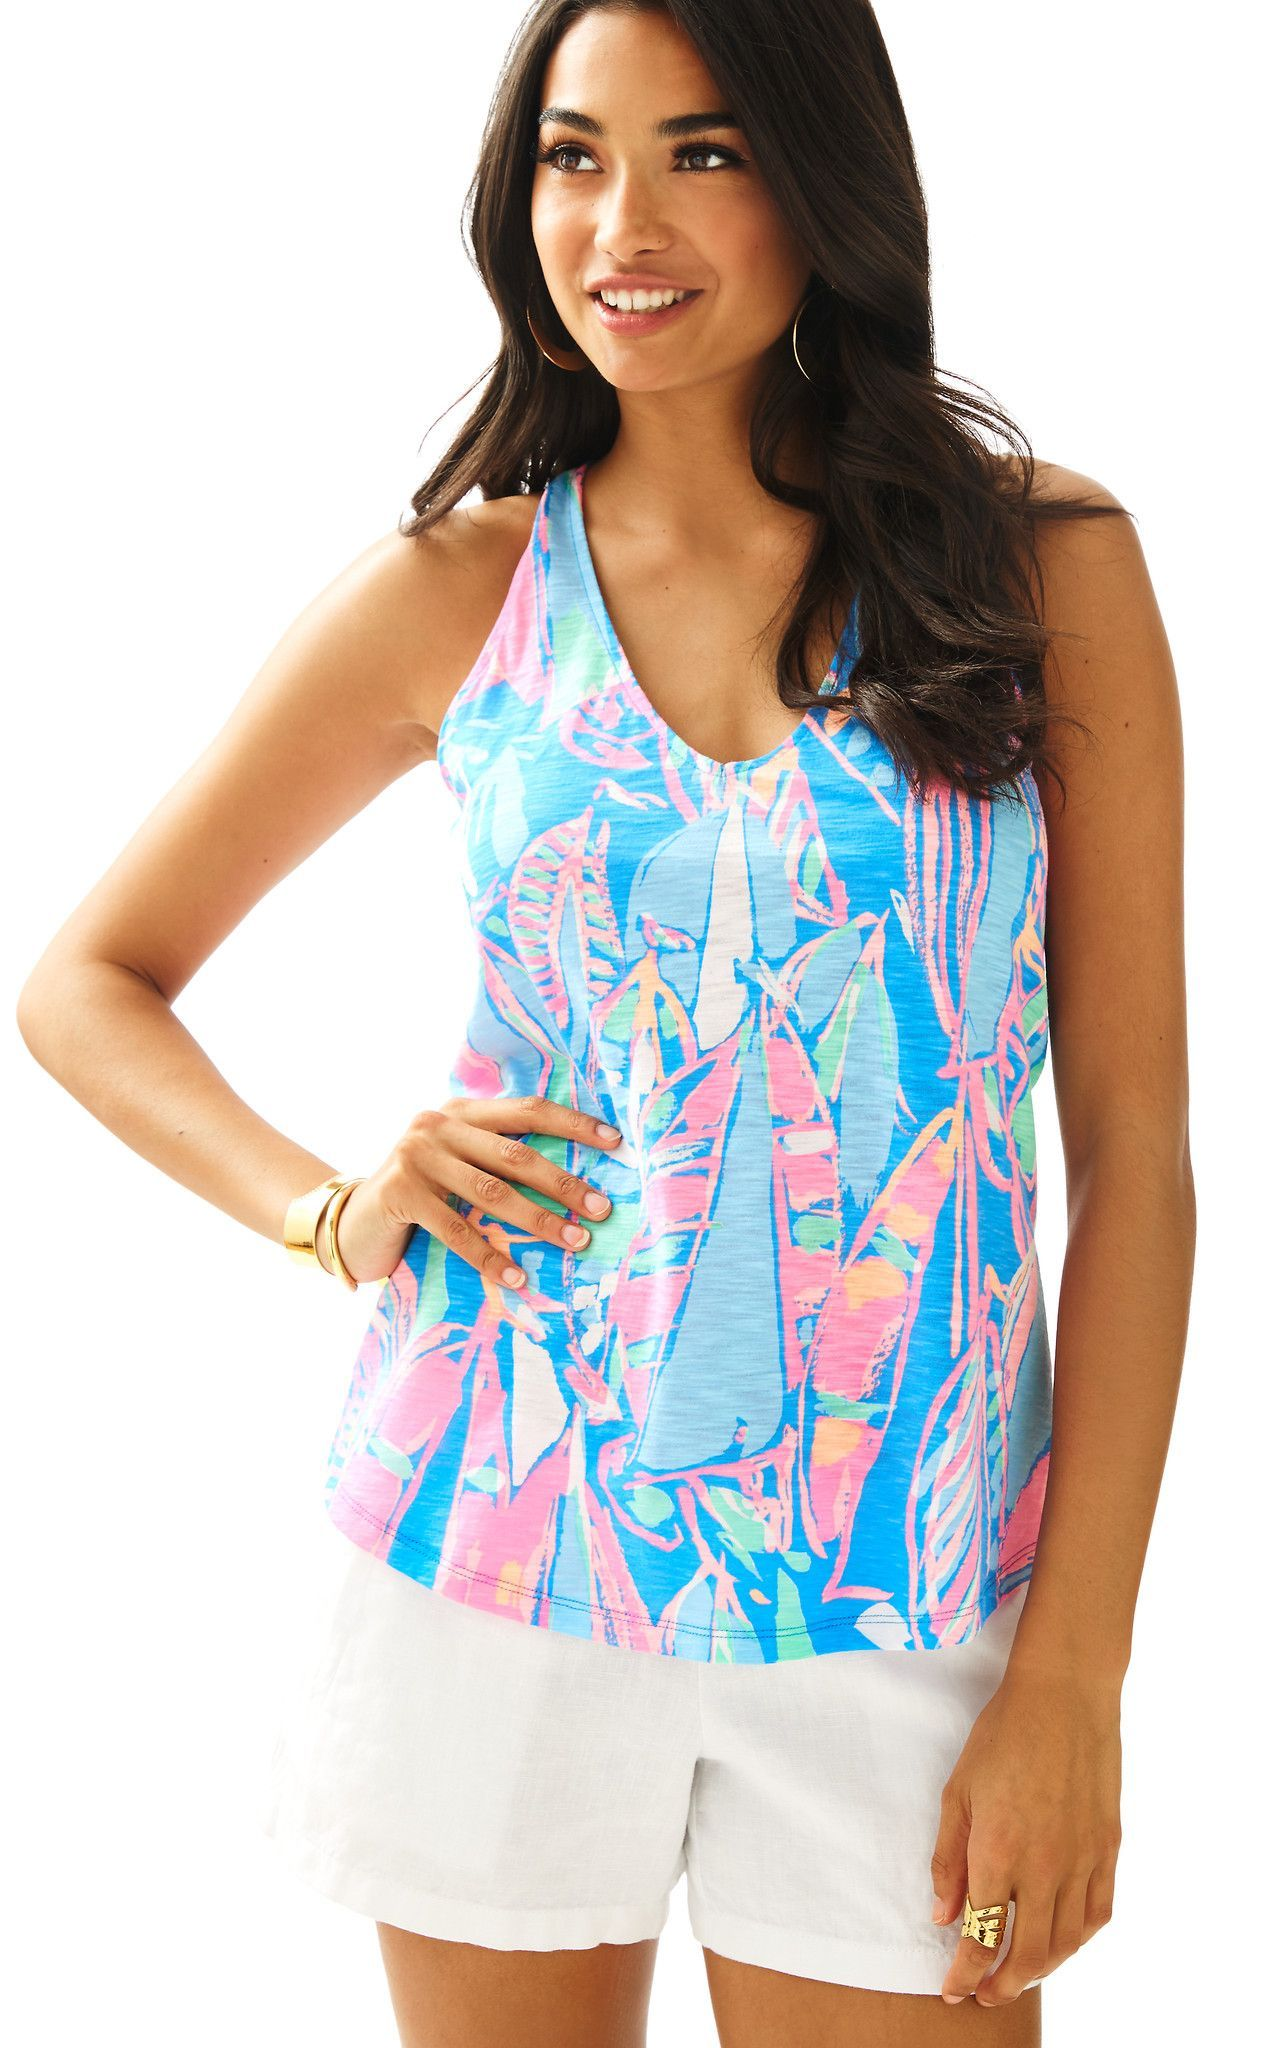 8a0f0075a56db6 lilly pulitzer bay blue out to sea minka top | My Lilly collection ...